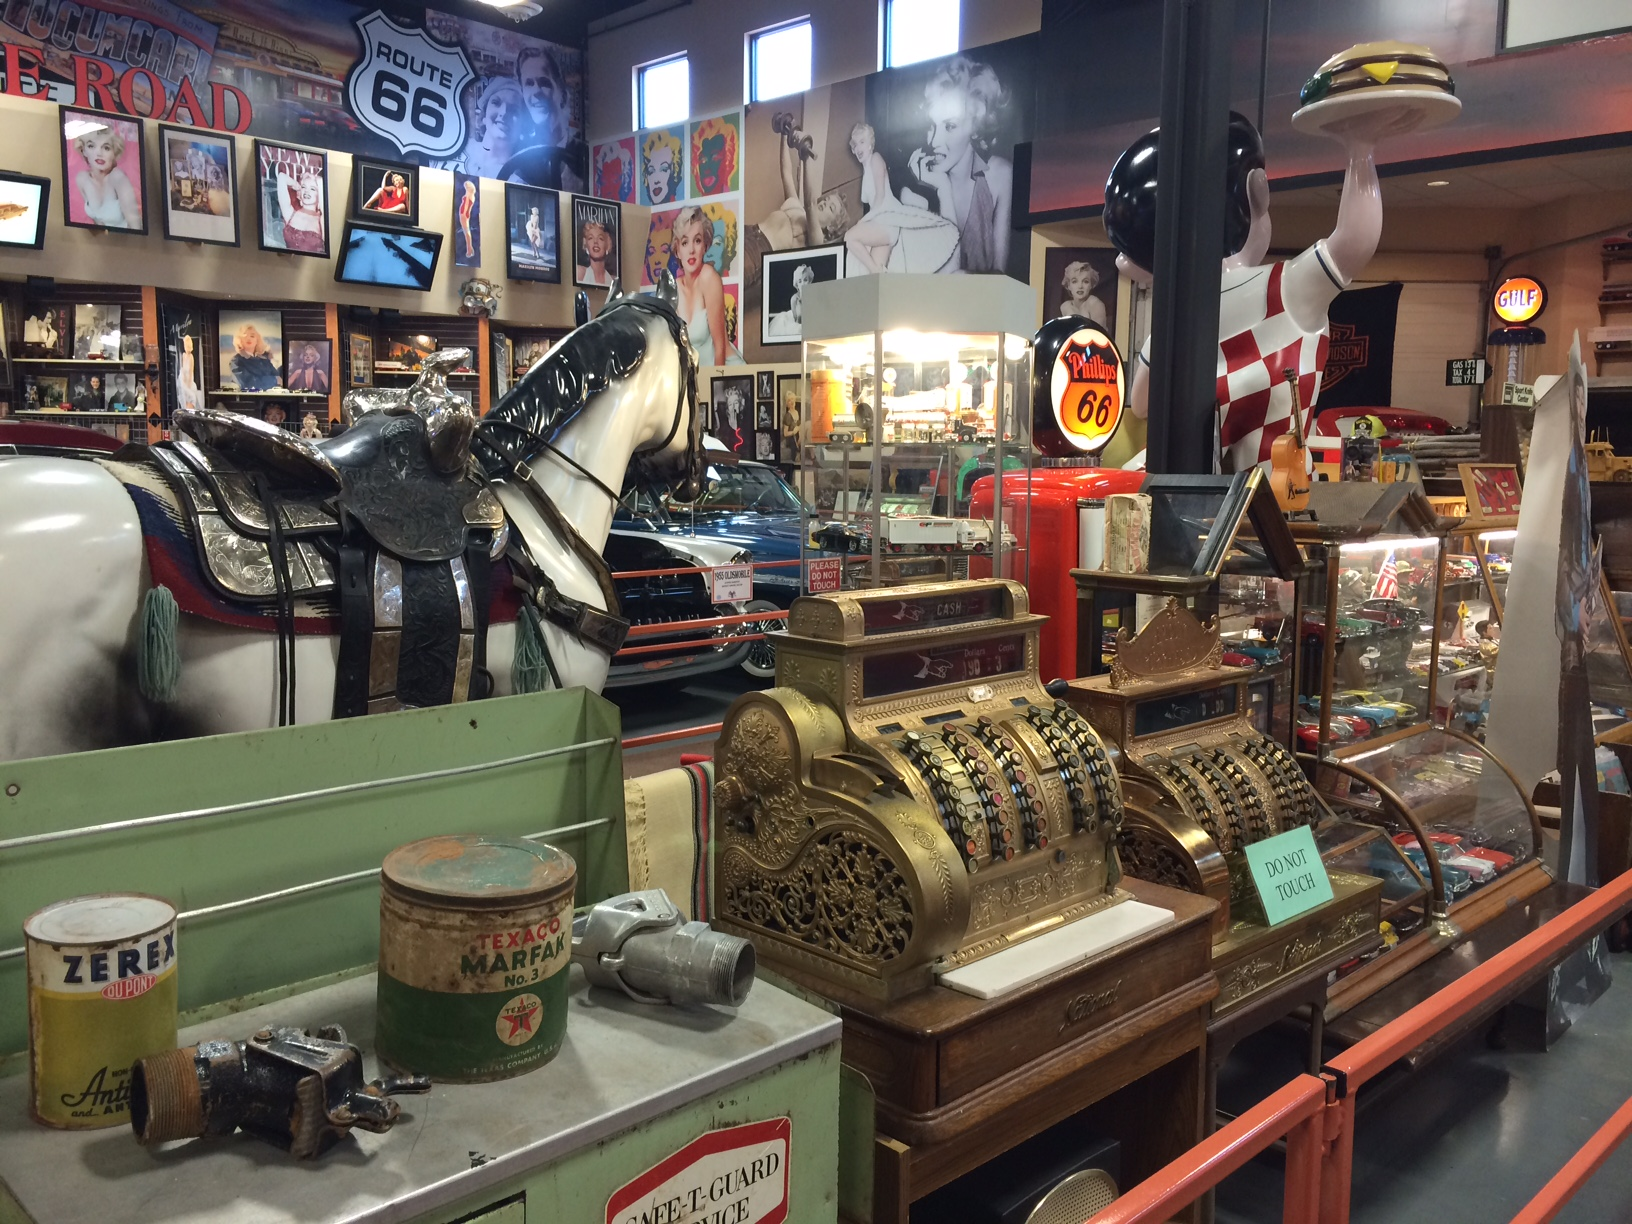 Get Your Kicks On Route 66 The Great American Road Trip